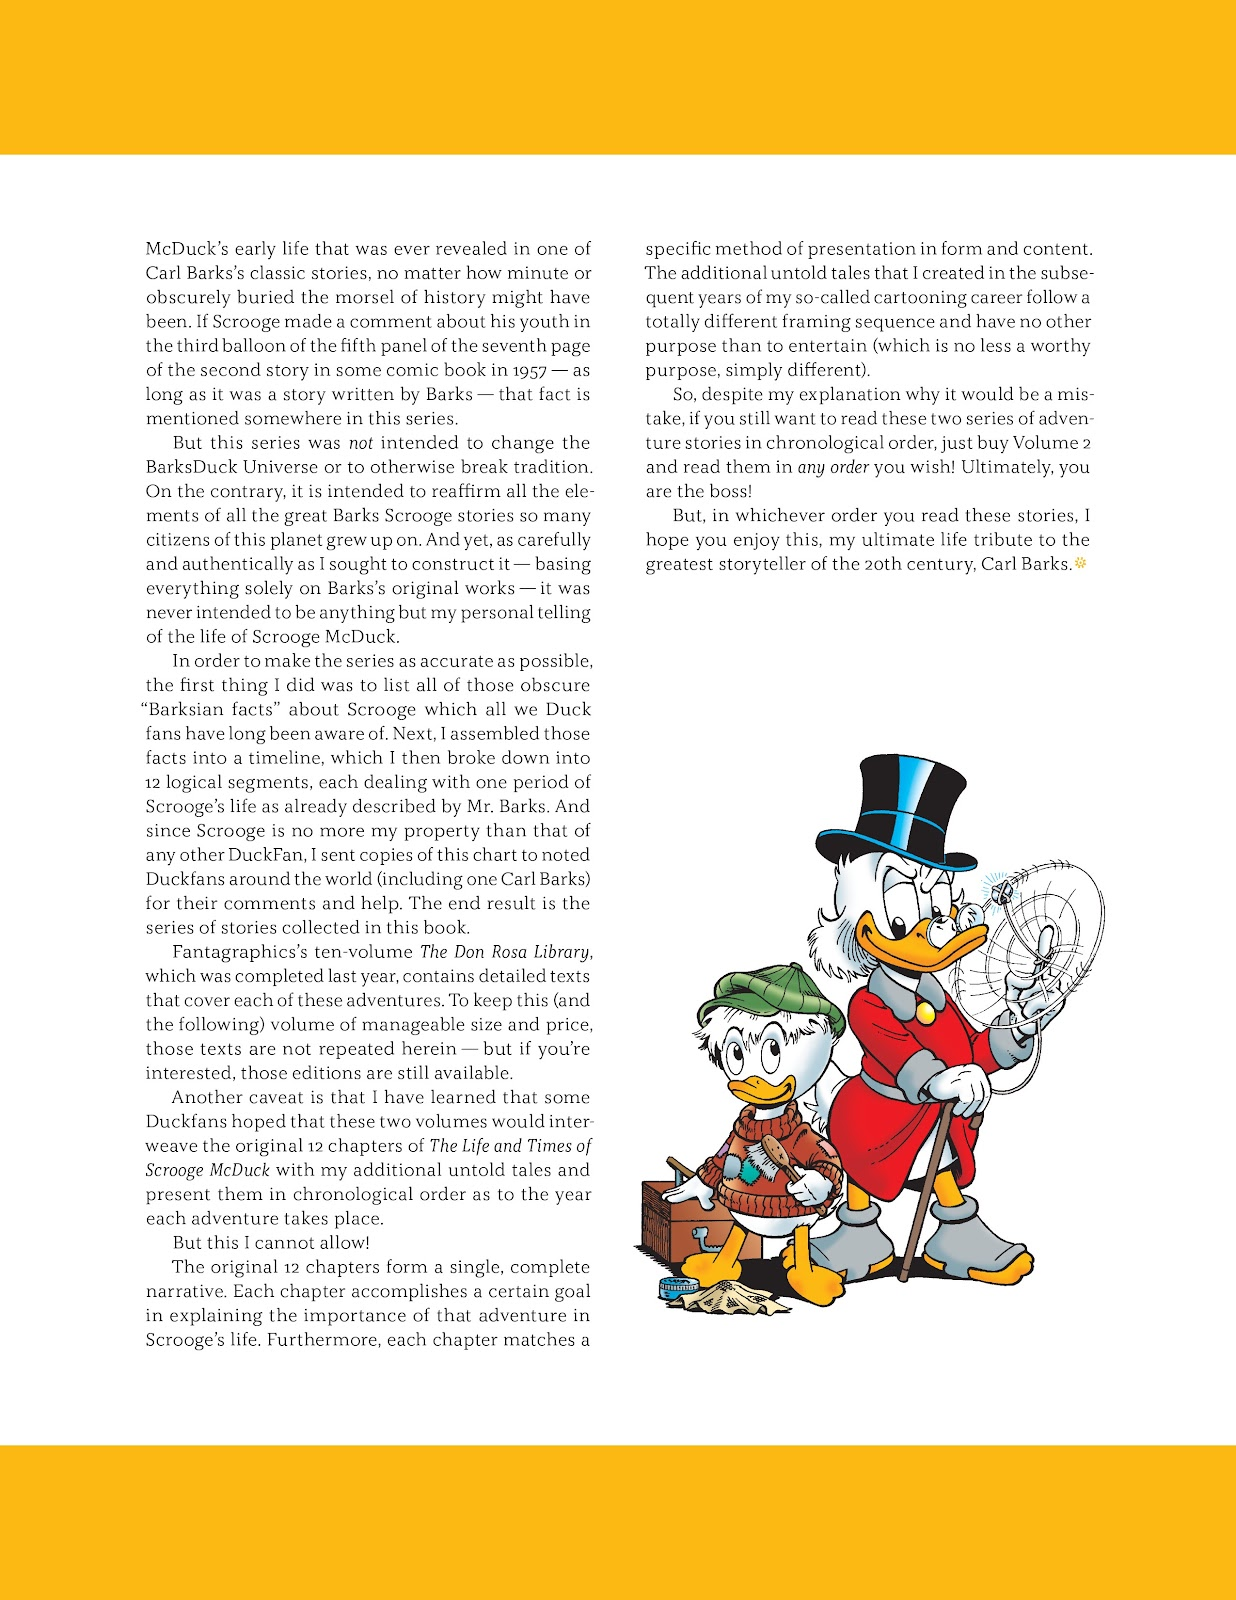 Read online The Complete Life and Times of Scrooge McDuck comic -  Issue # TPB 1 (Part 1) - 8